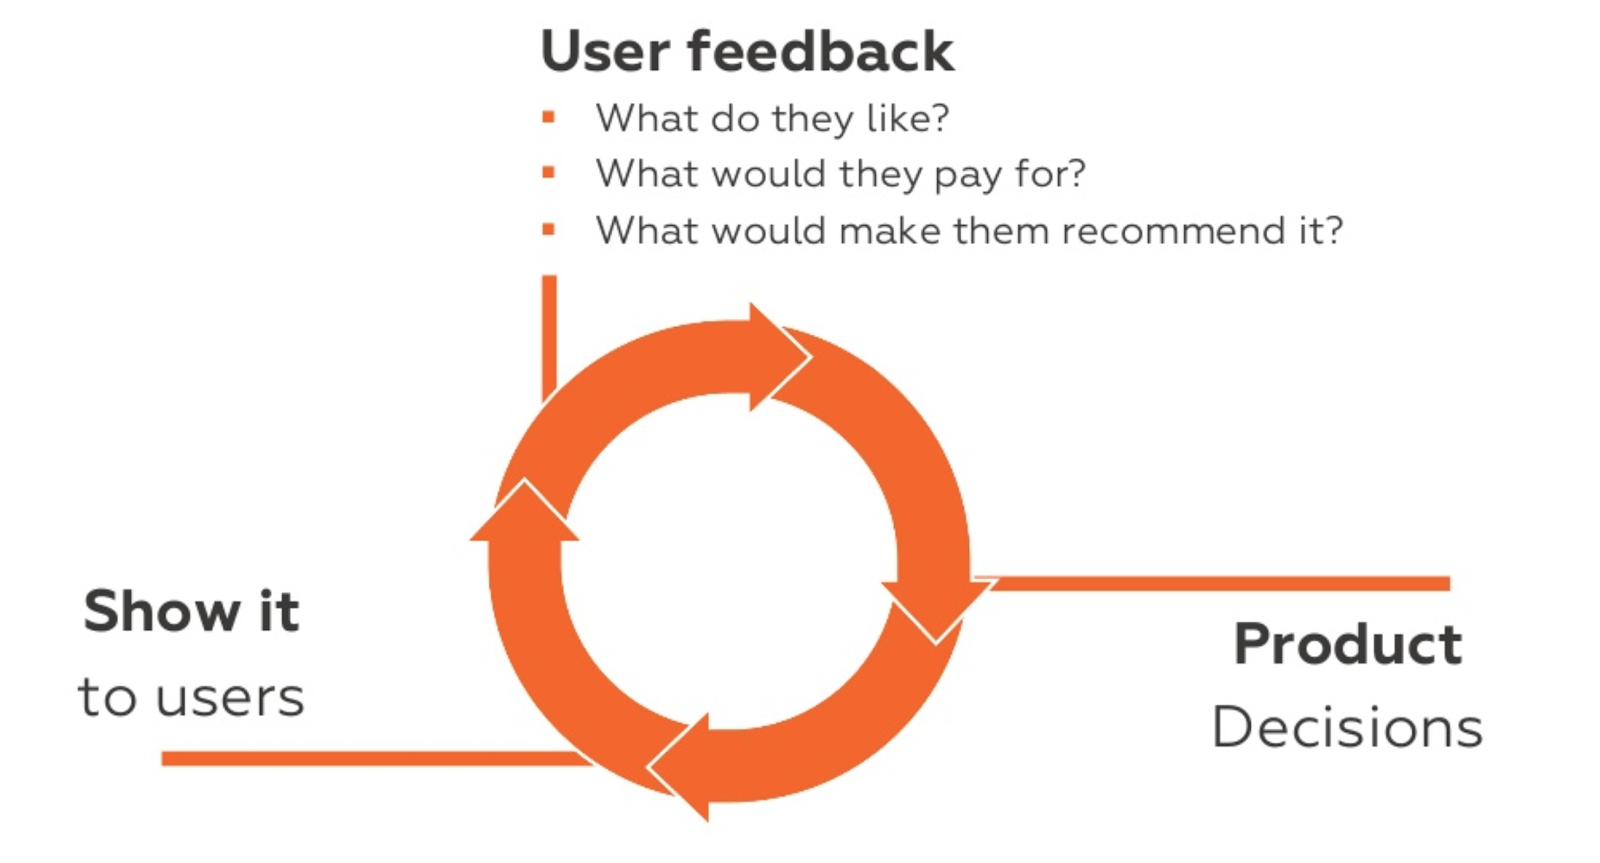 User feedback to product decisions